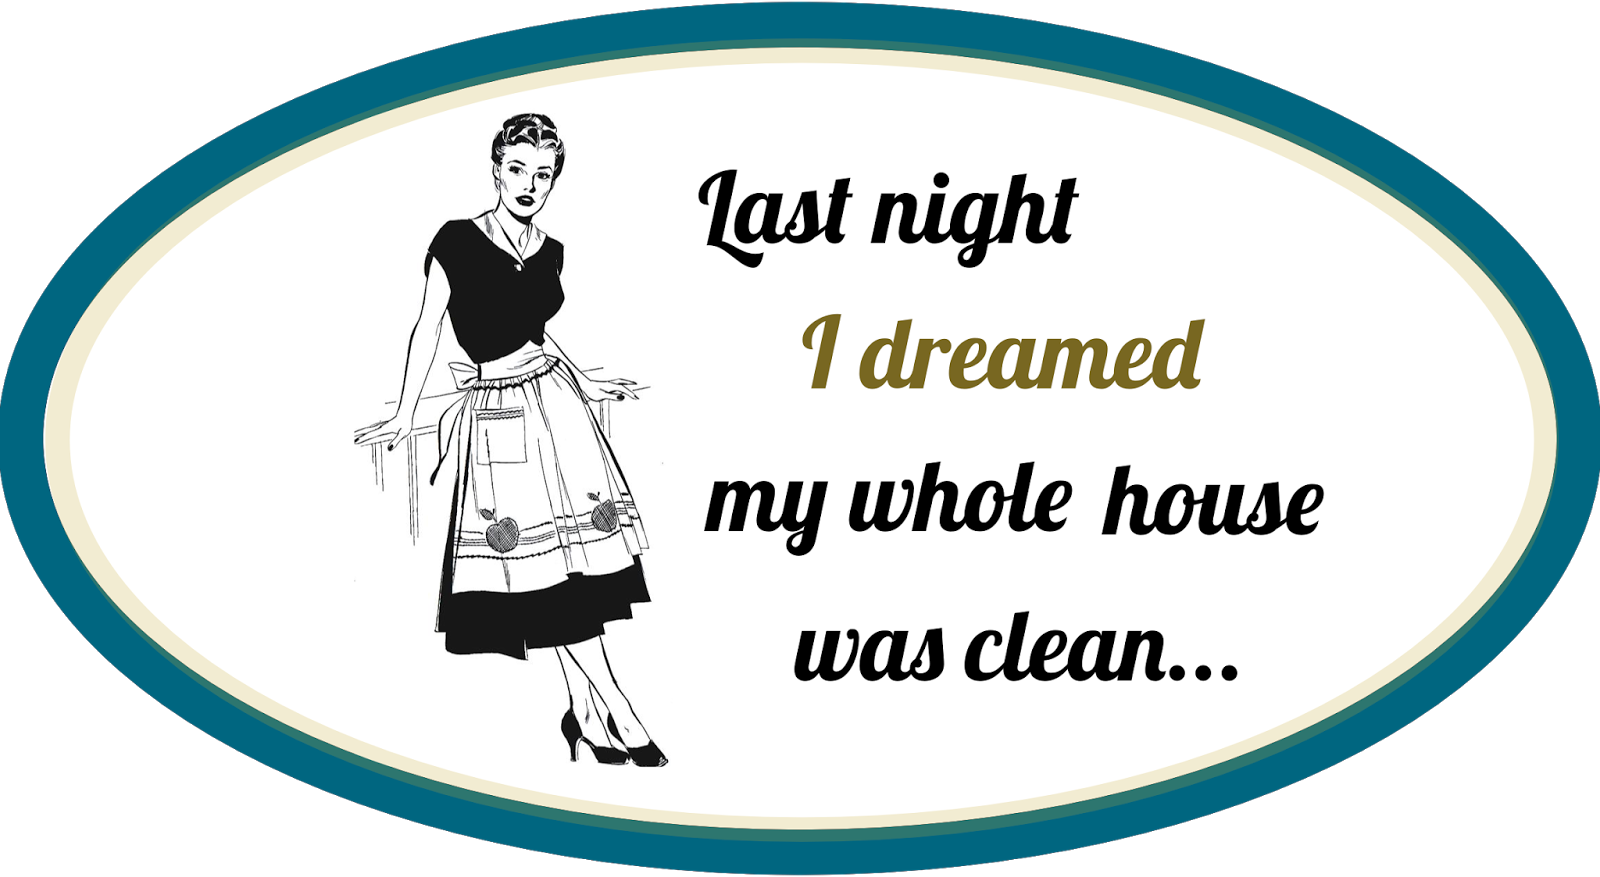 Sparkling clean kitchen clipart - Free Digital Quote Scrapbooking Embellishment Clipart